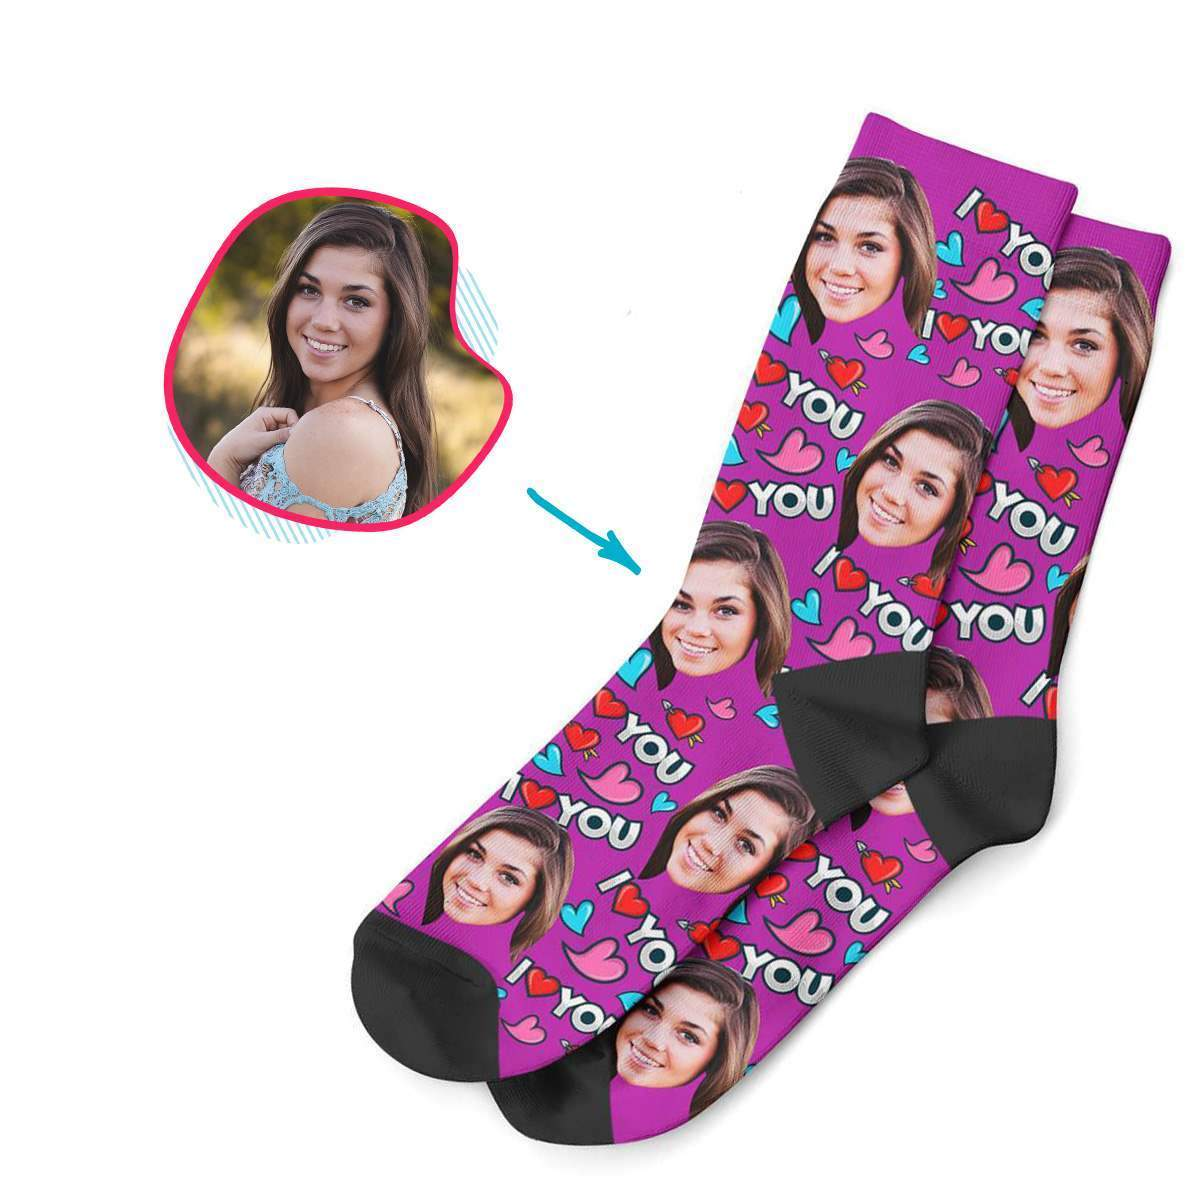 purple Love You socks personalized with photo of face printed on them